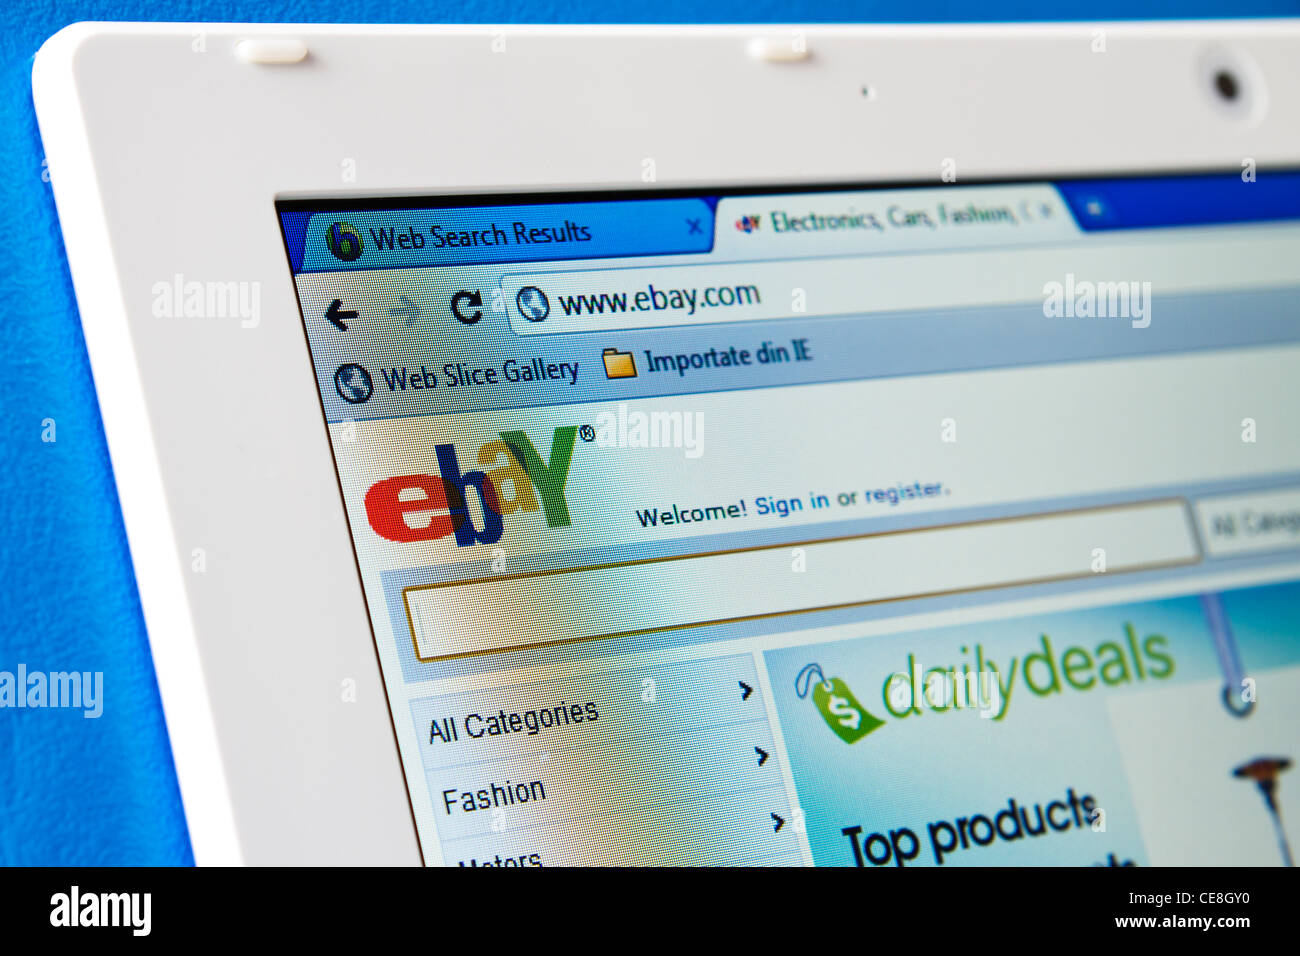 ebay home page - Stock Image